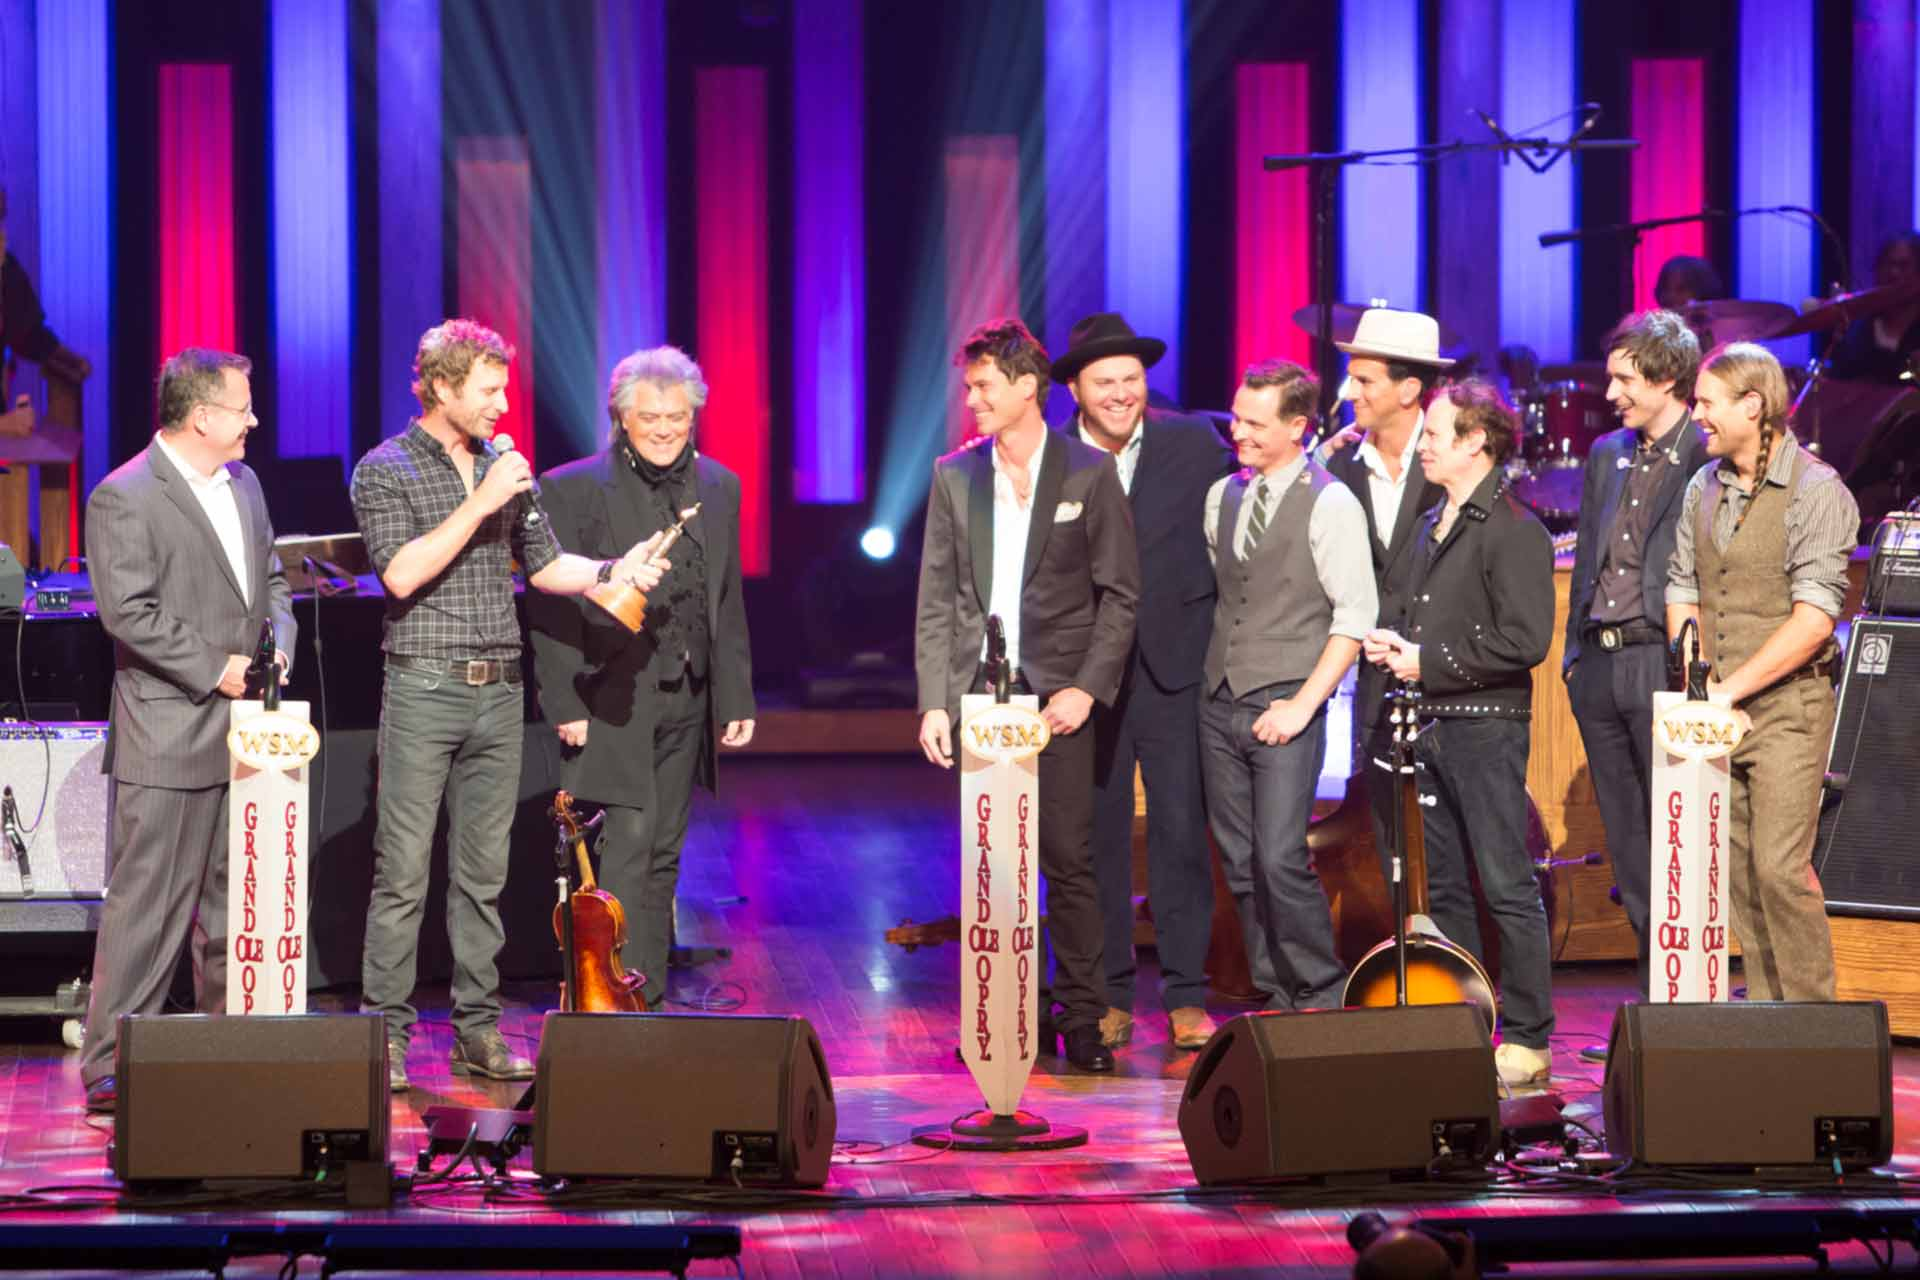 Grand Ole Opry Show Tickets Reserve Tickets Online For Nashville